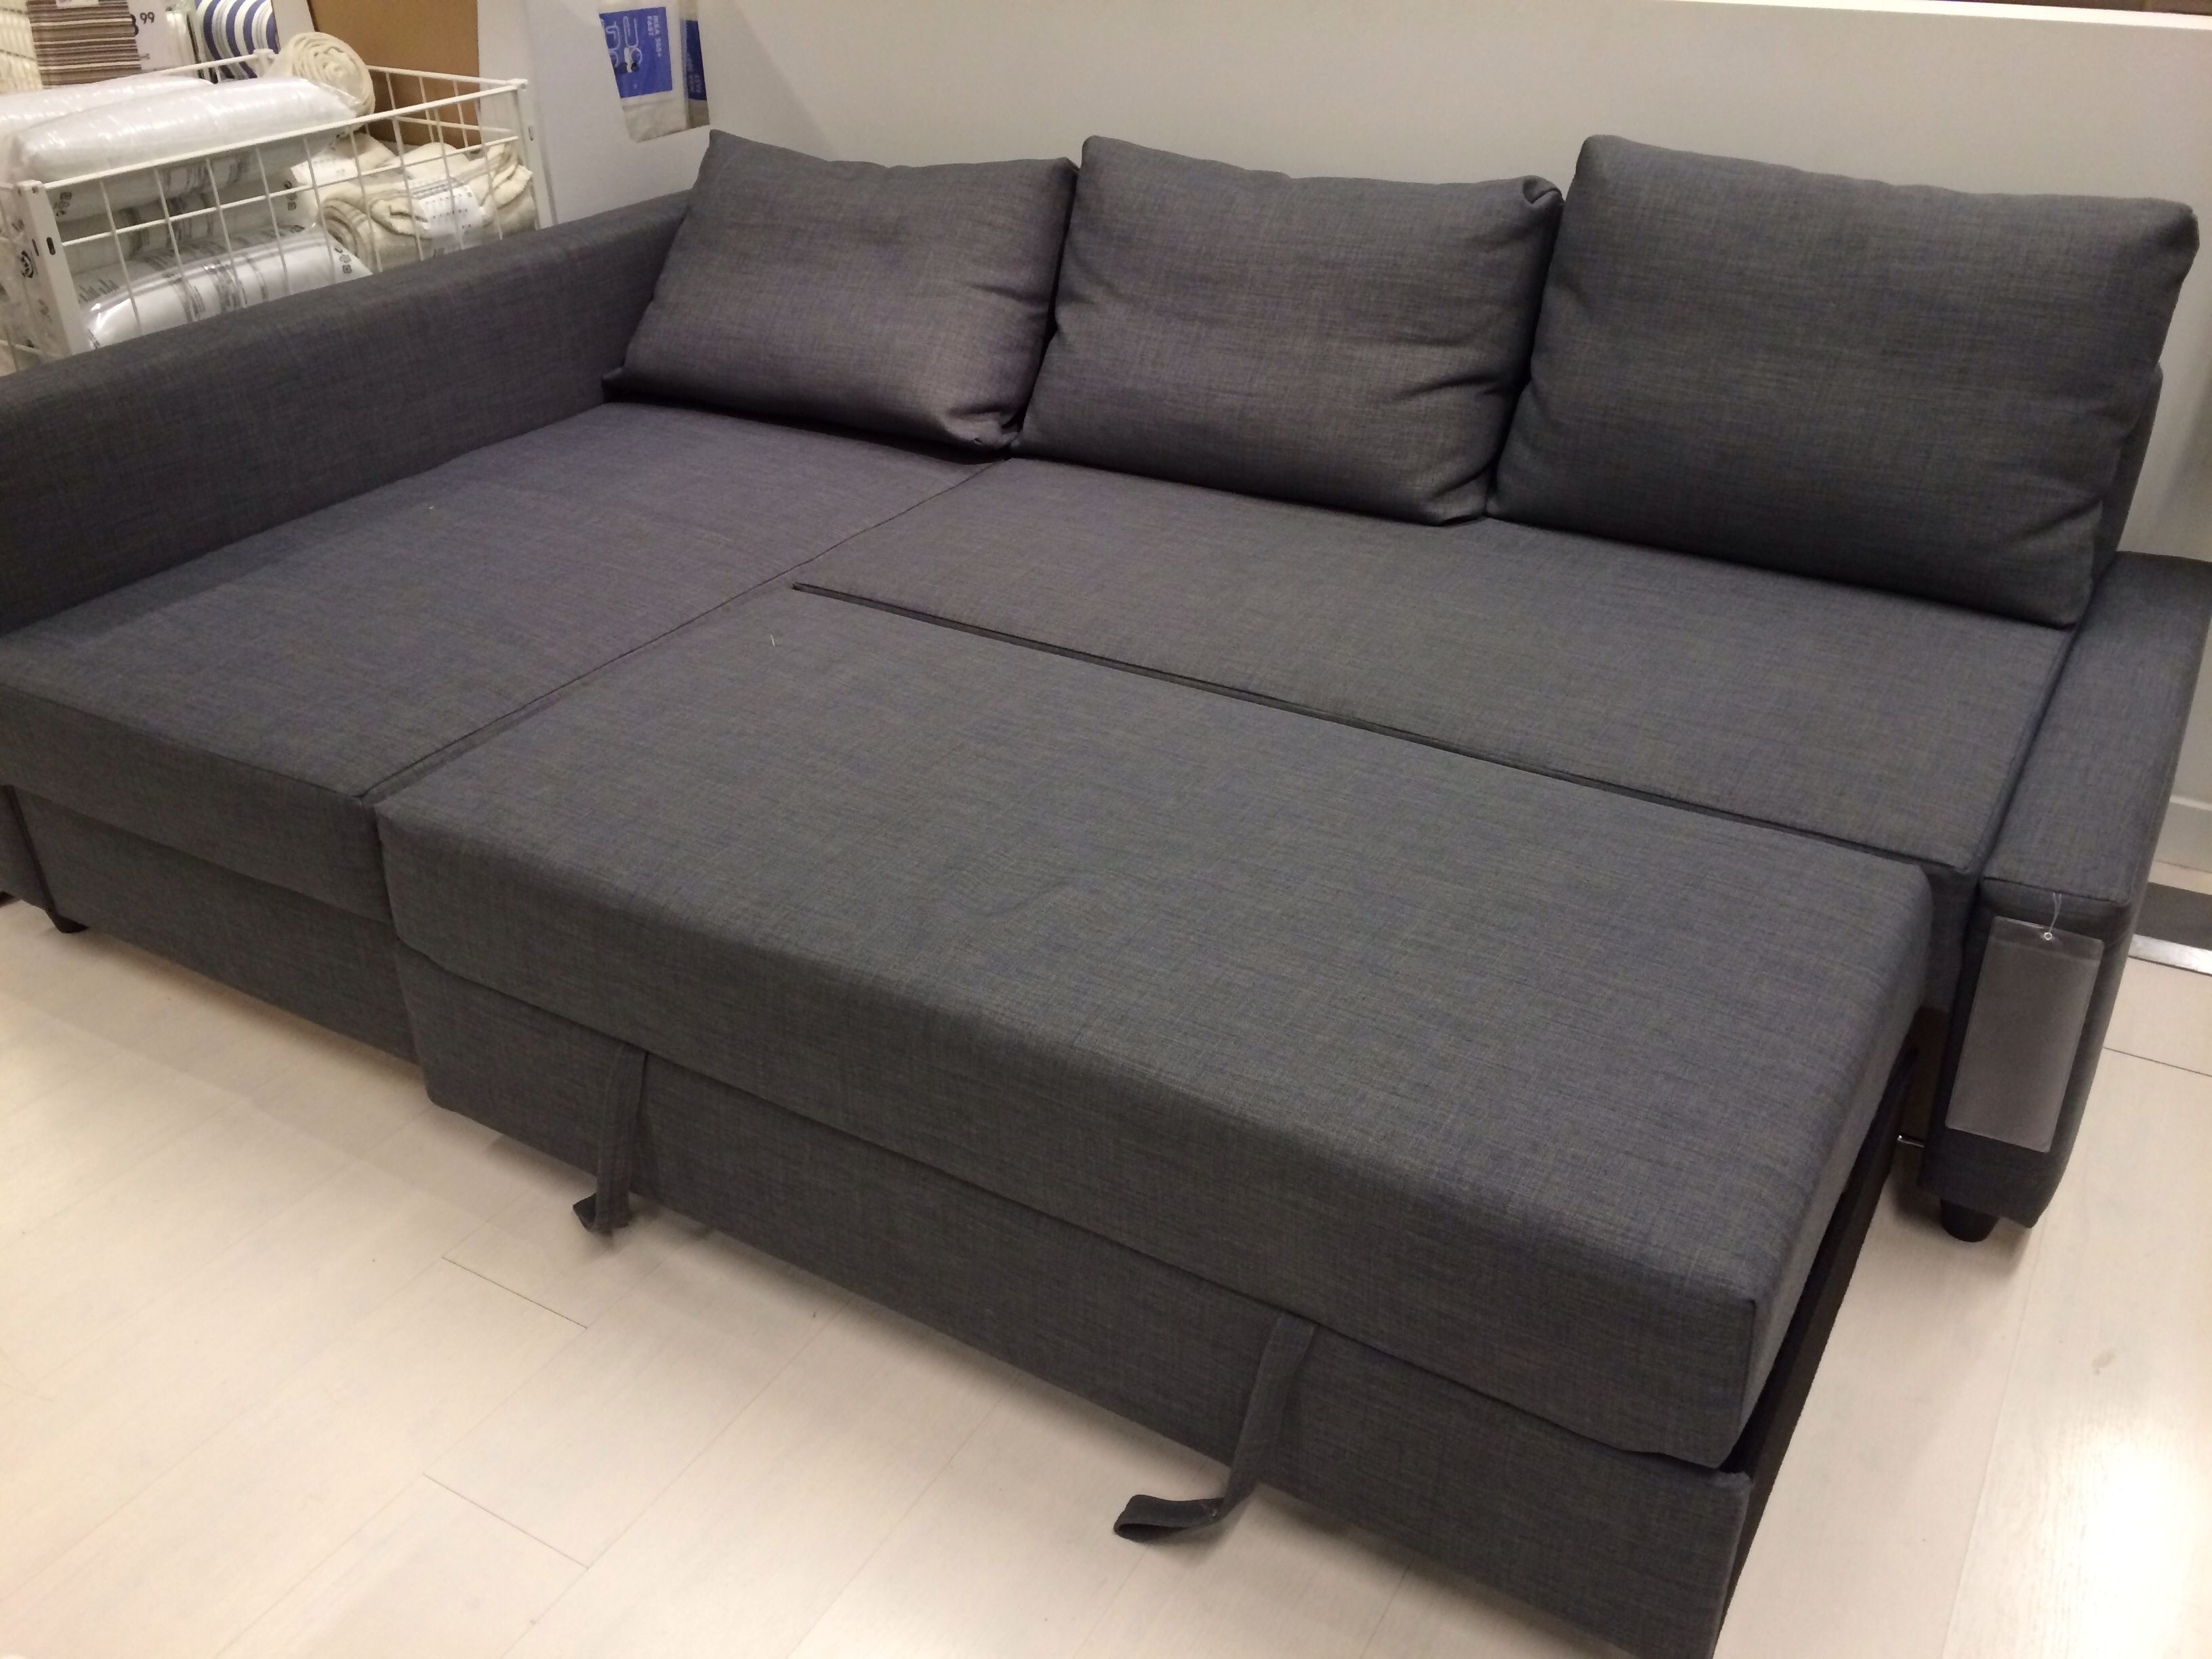 Ikea Friheten Sofa Come Bed Ikea Sofa Bed Sofa Bed Uk